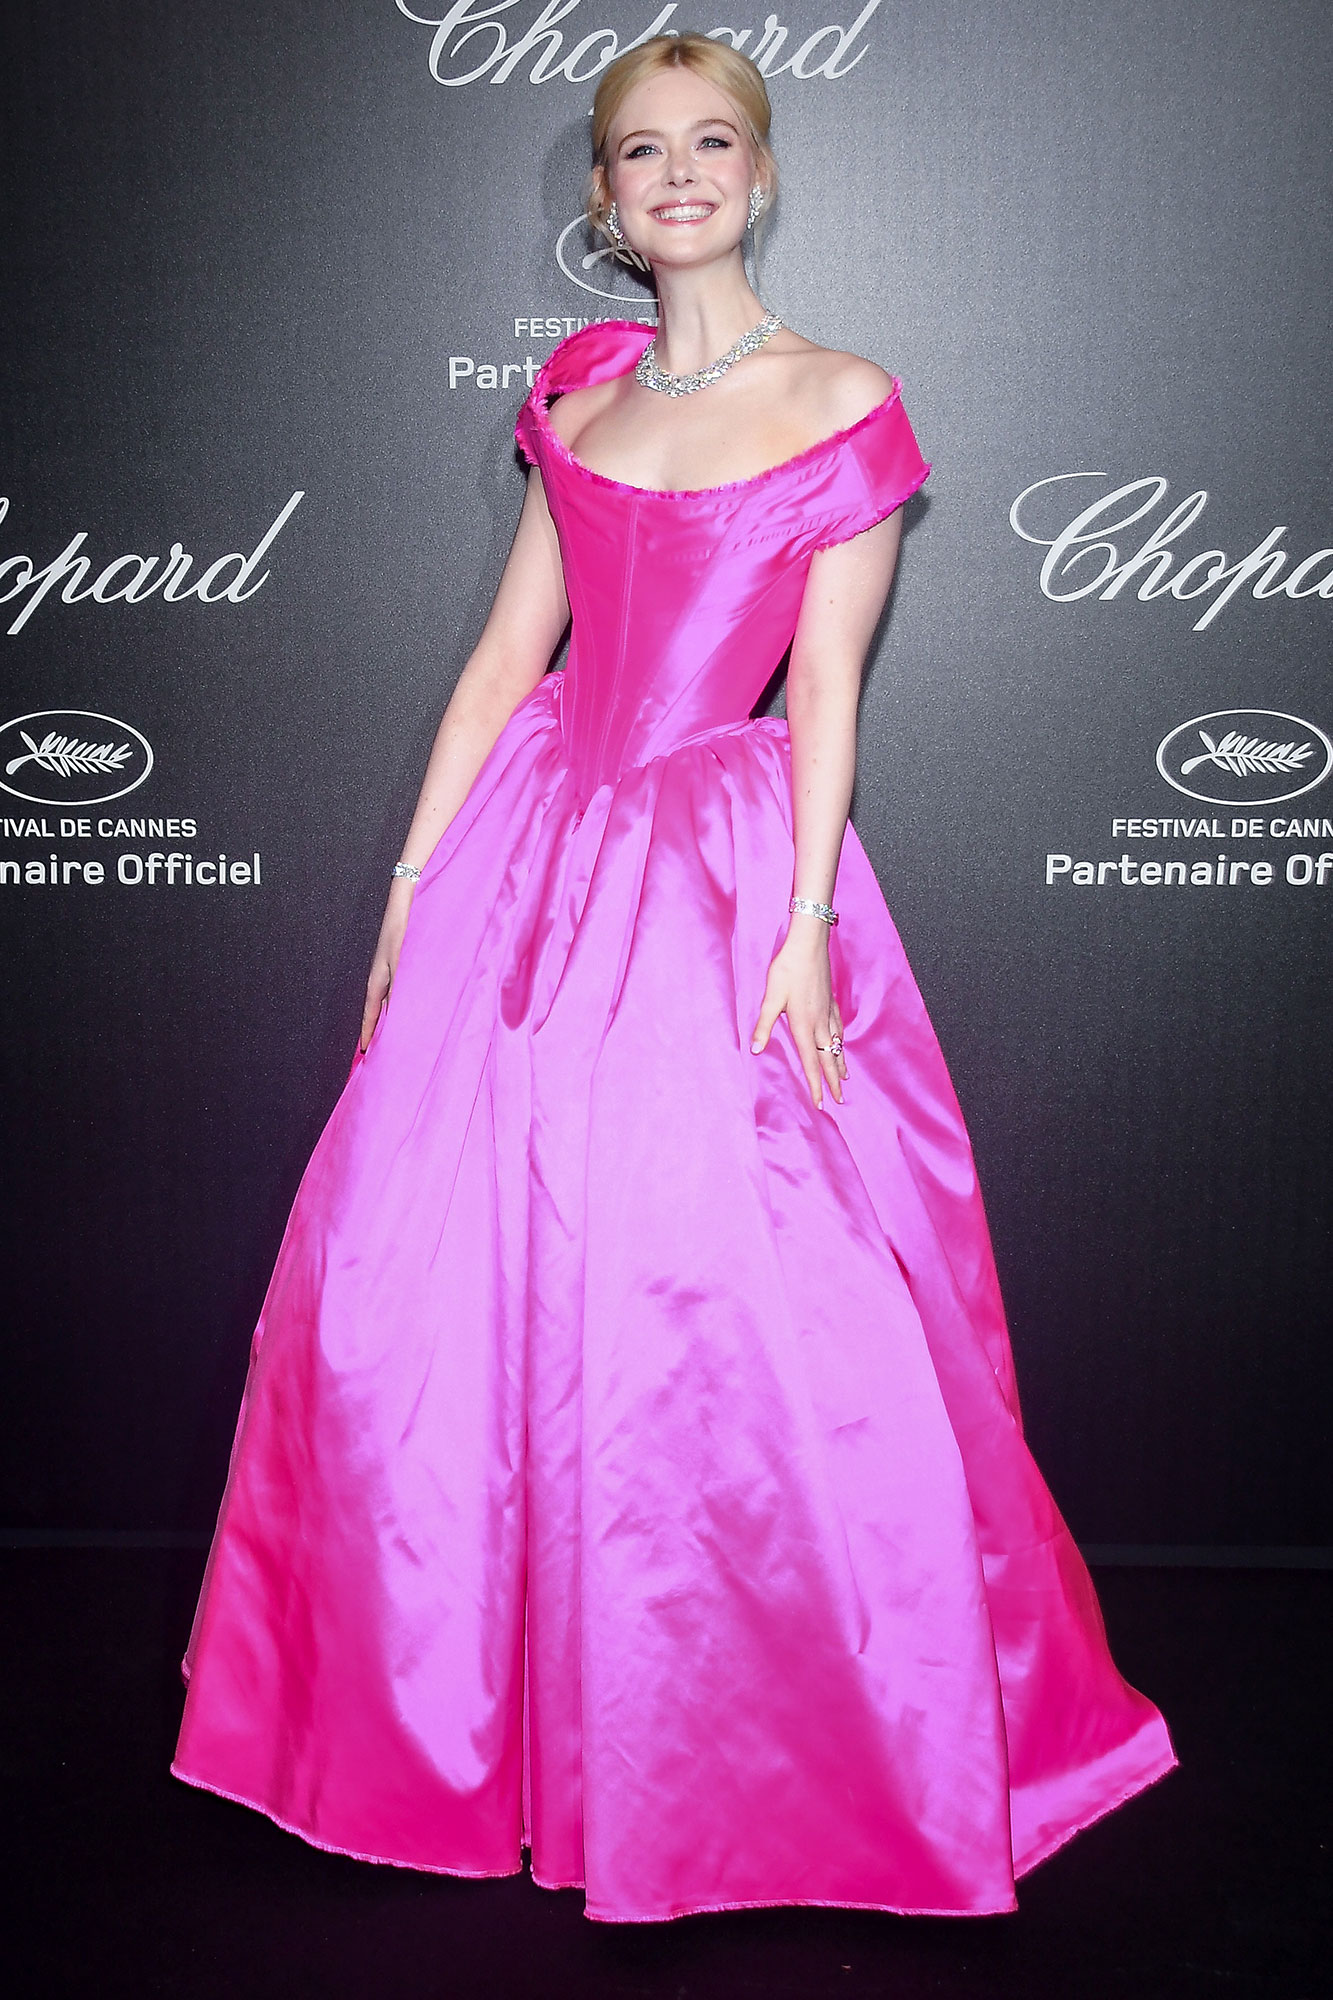 Elle Fanning Stepping Out in Style at Cannes Film Festival - Pretty in pink, indeed! The jurist brightened up the black carpet in a fuchsia Vivienne Westwood ball gown and Chopard bling at a party for the jeweler on Friday, May 17.